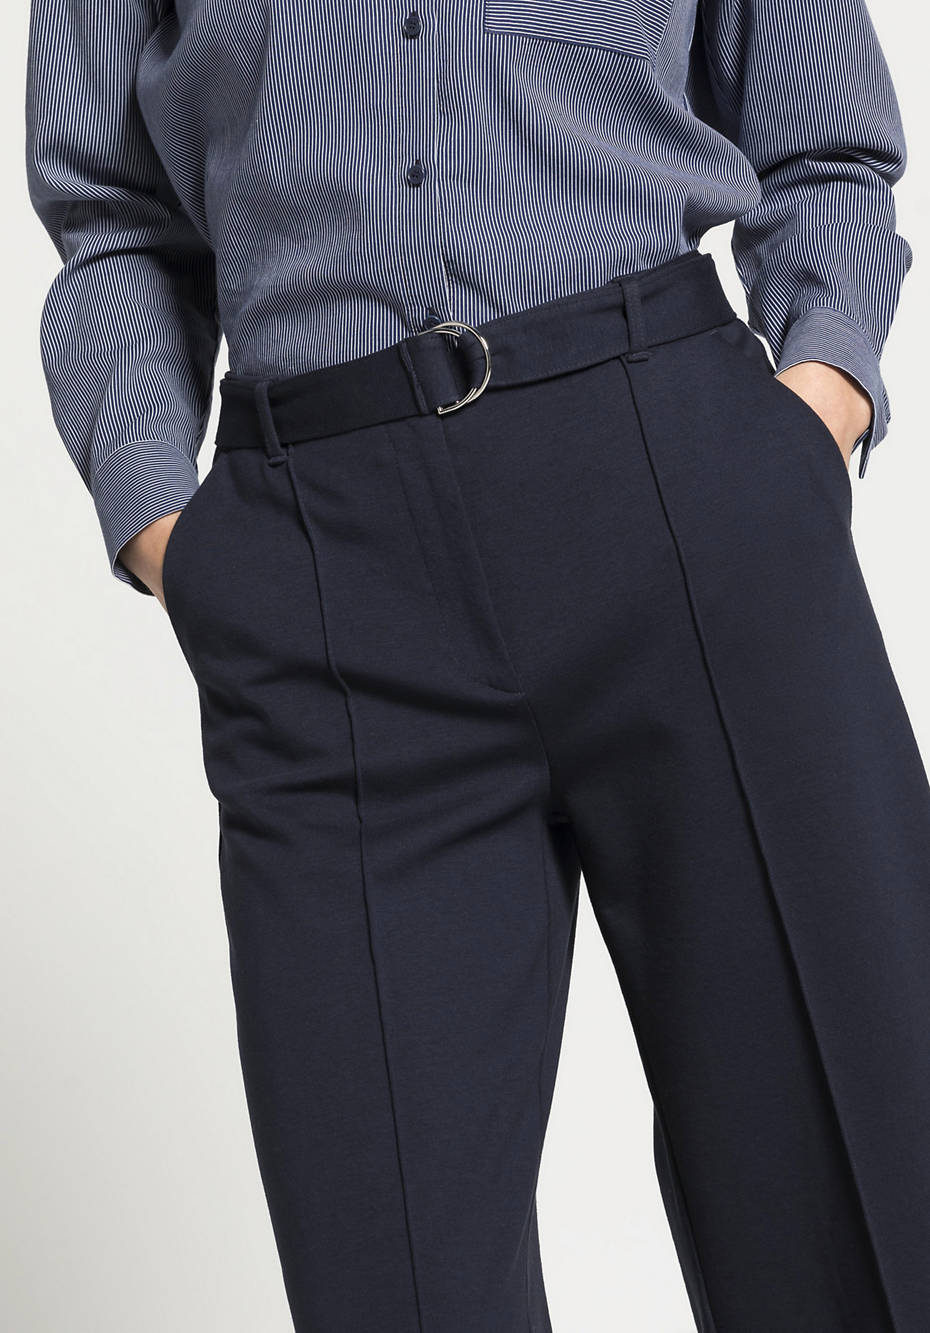 Jersey culottes made of organic cotton with TENCEL ™ Modal